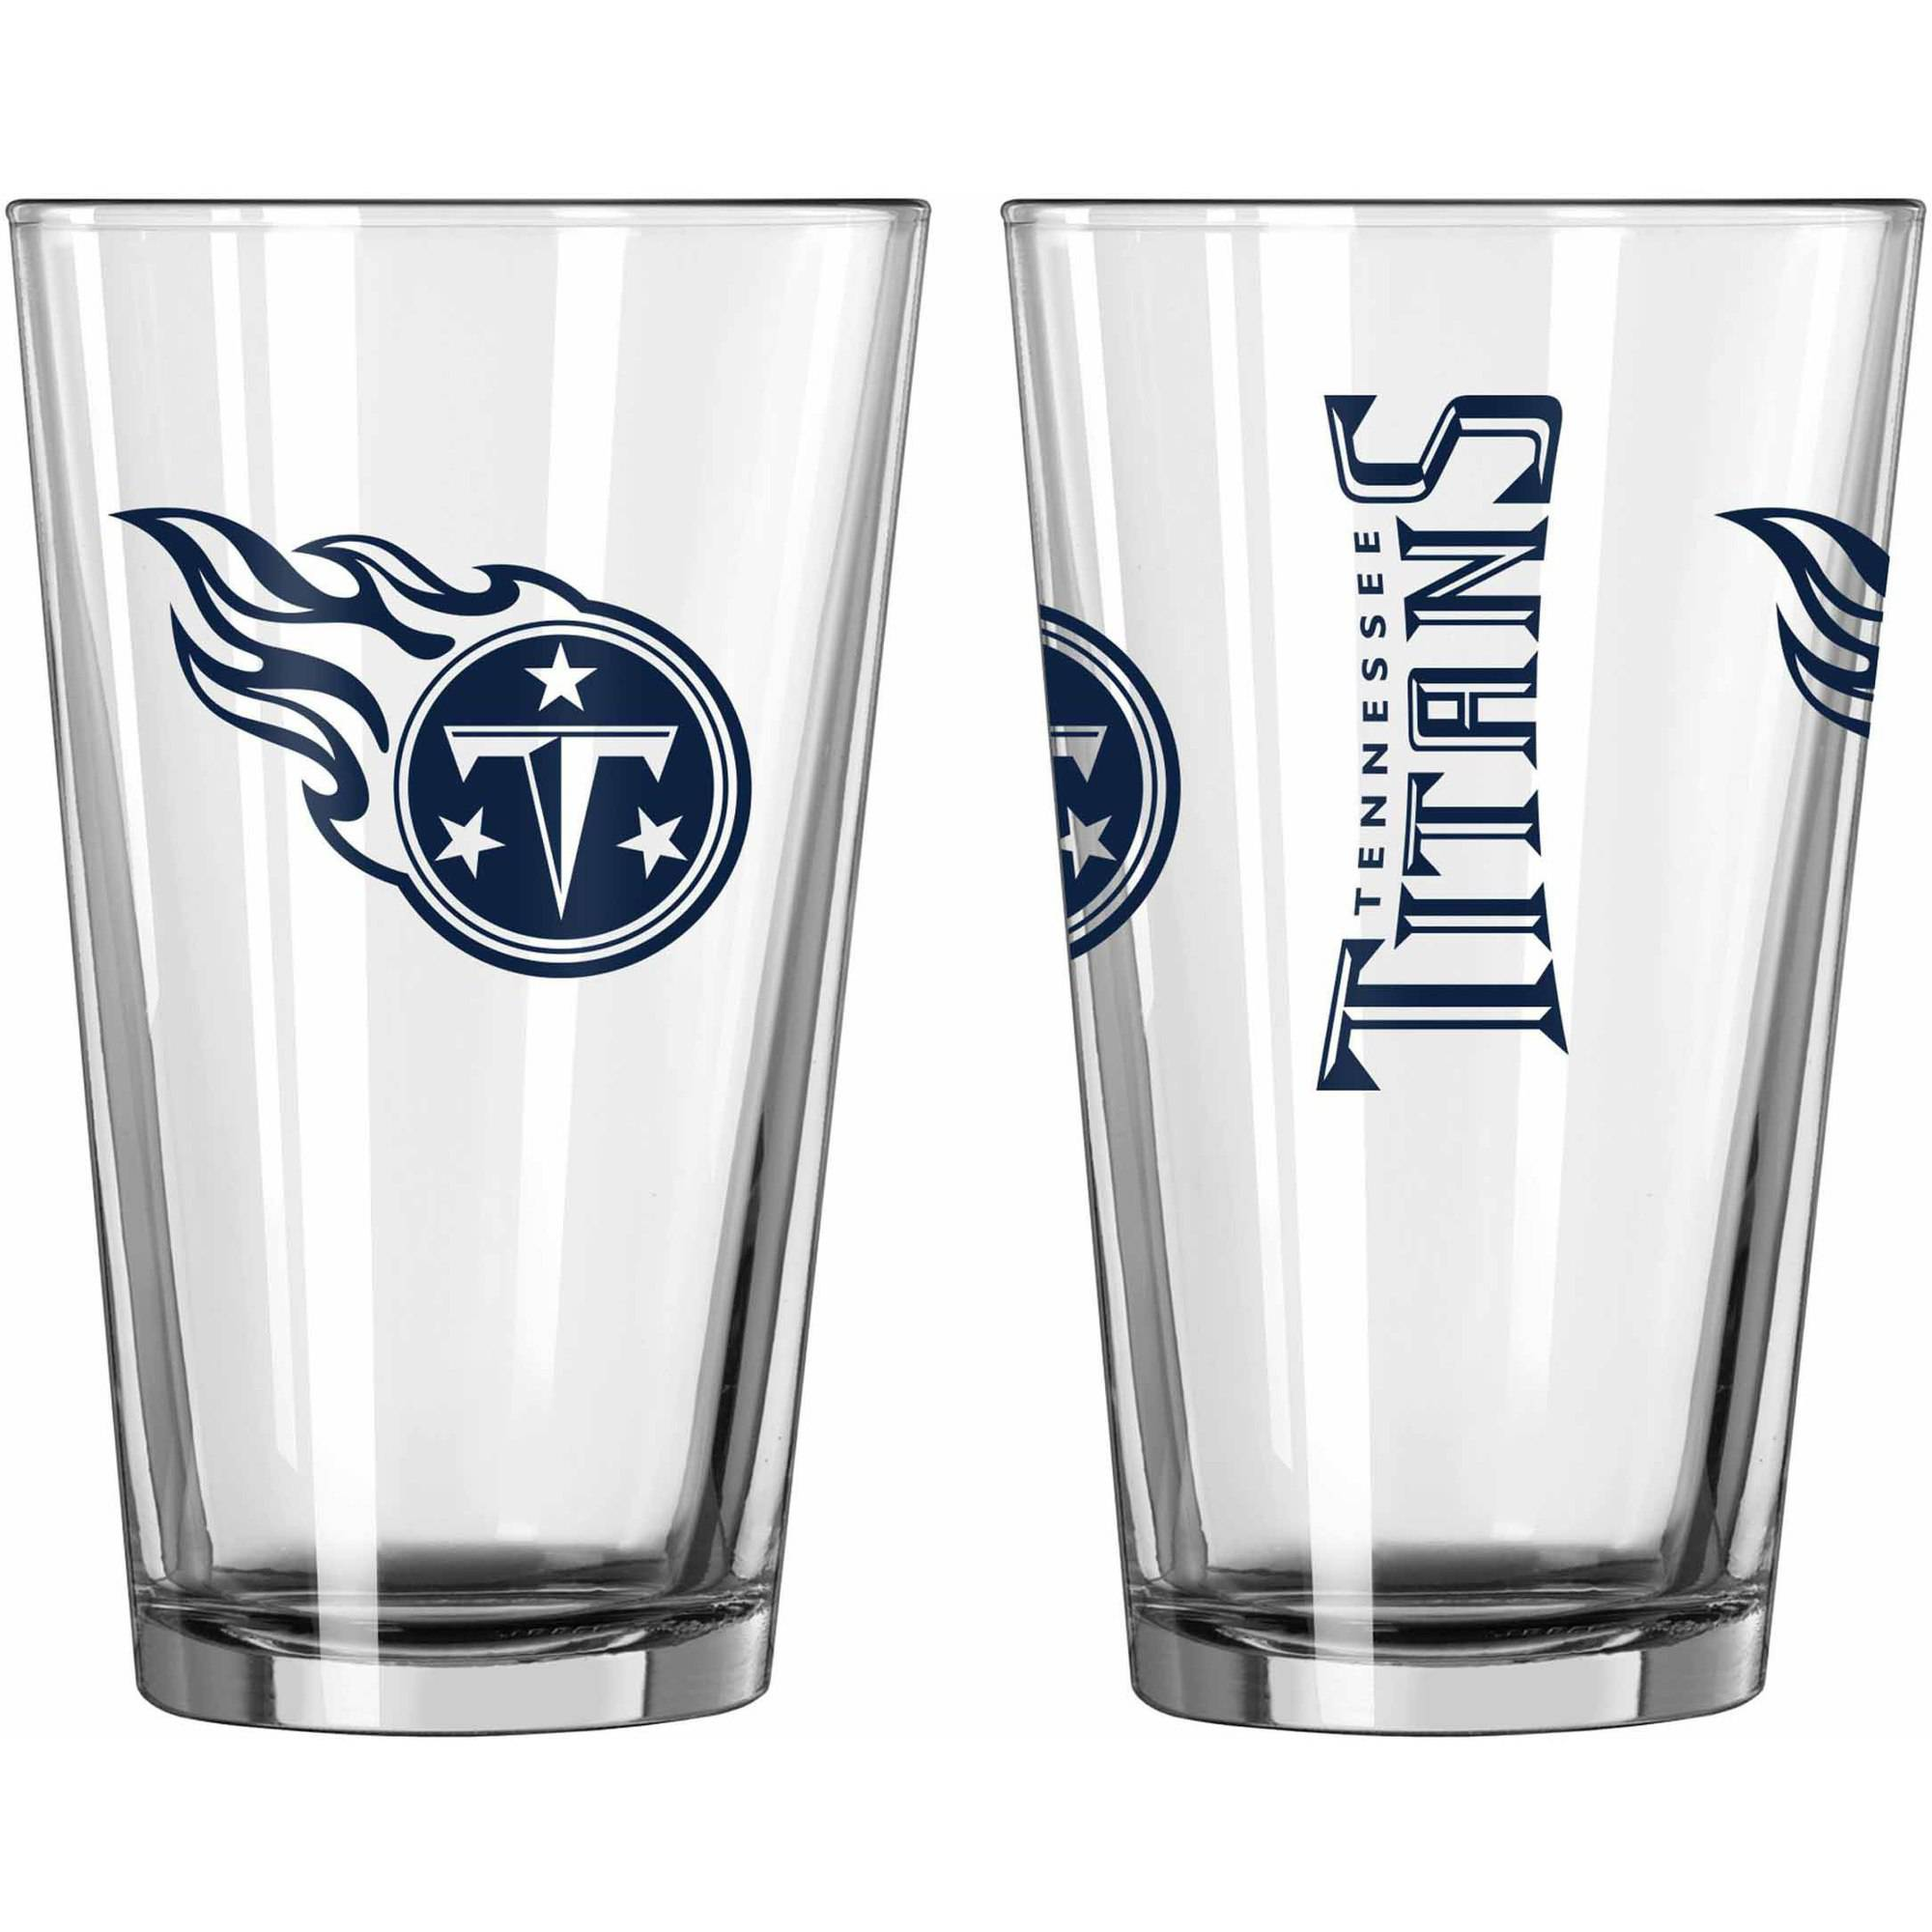 Boelter Brands NFL Set of Two 16 Ounce Game Day Pint Set, Tennessee Titans